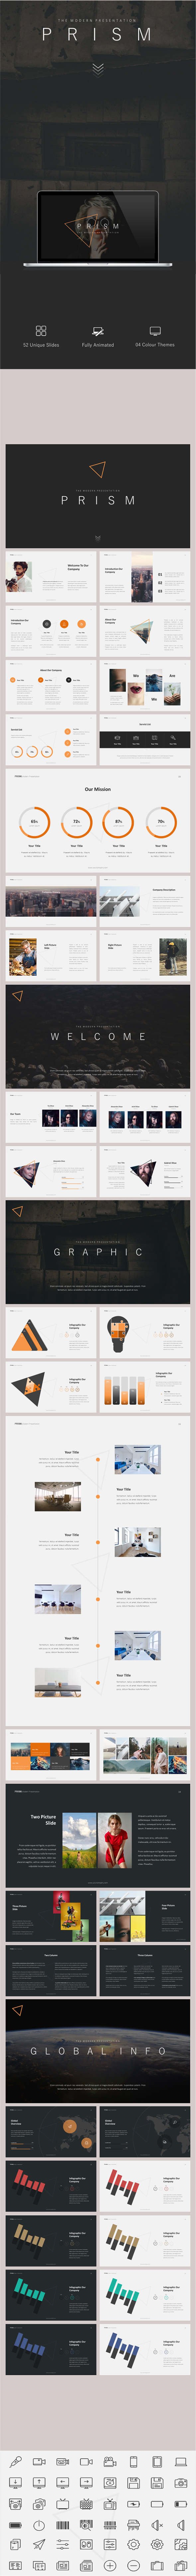 GraphicRiver Prism Powerpoint Template 20583690